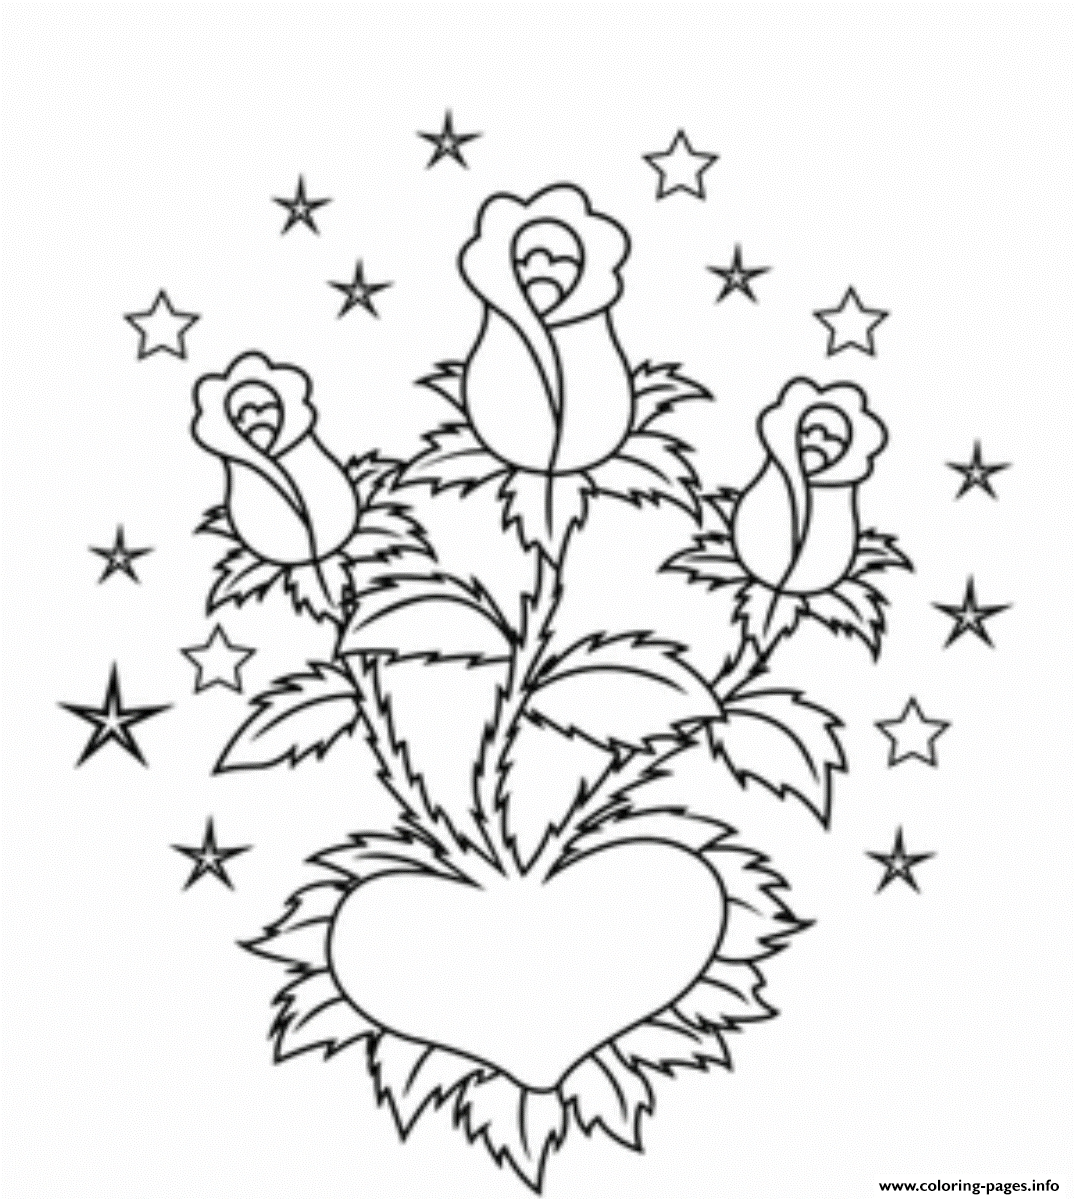 23 Coloring Pages Of Roses and Hearts Printable | FREE COLORING ...